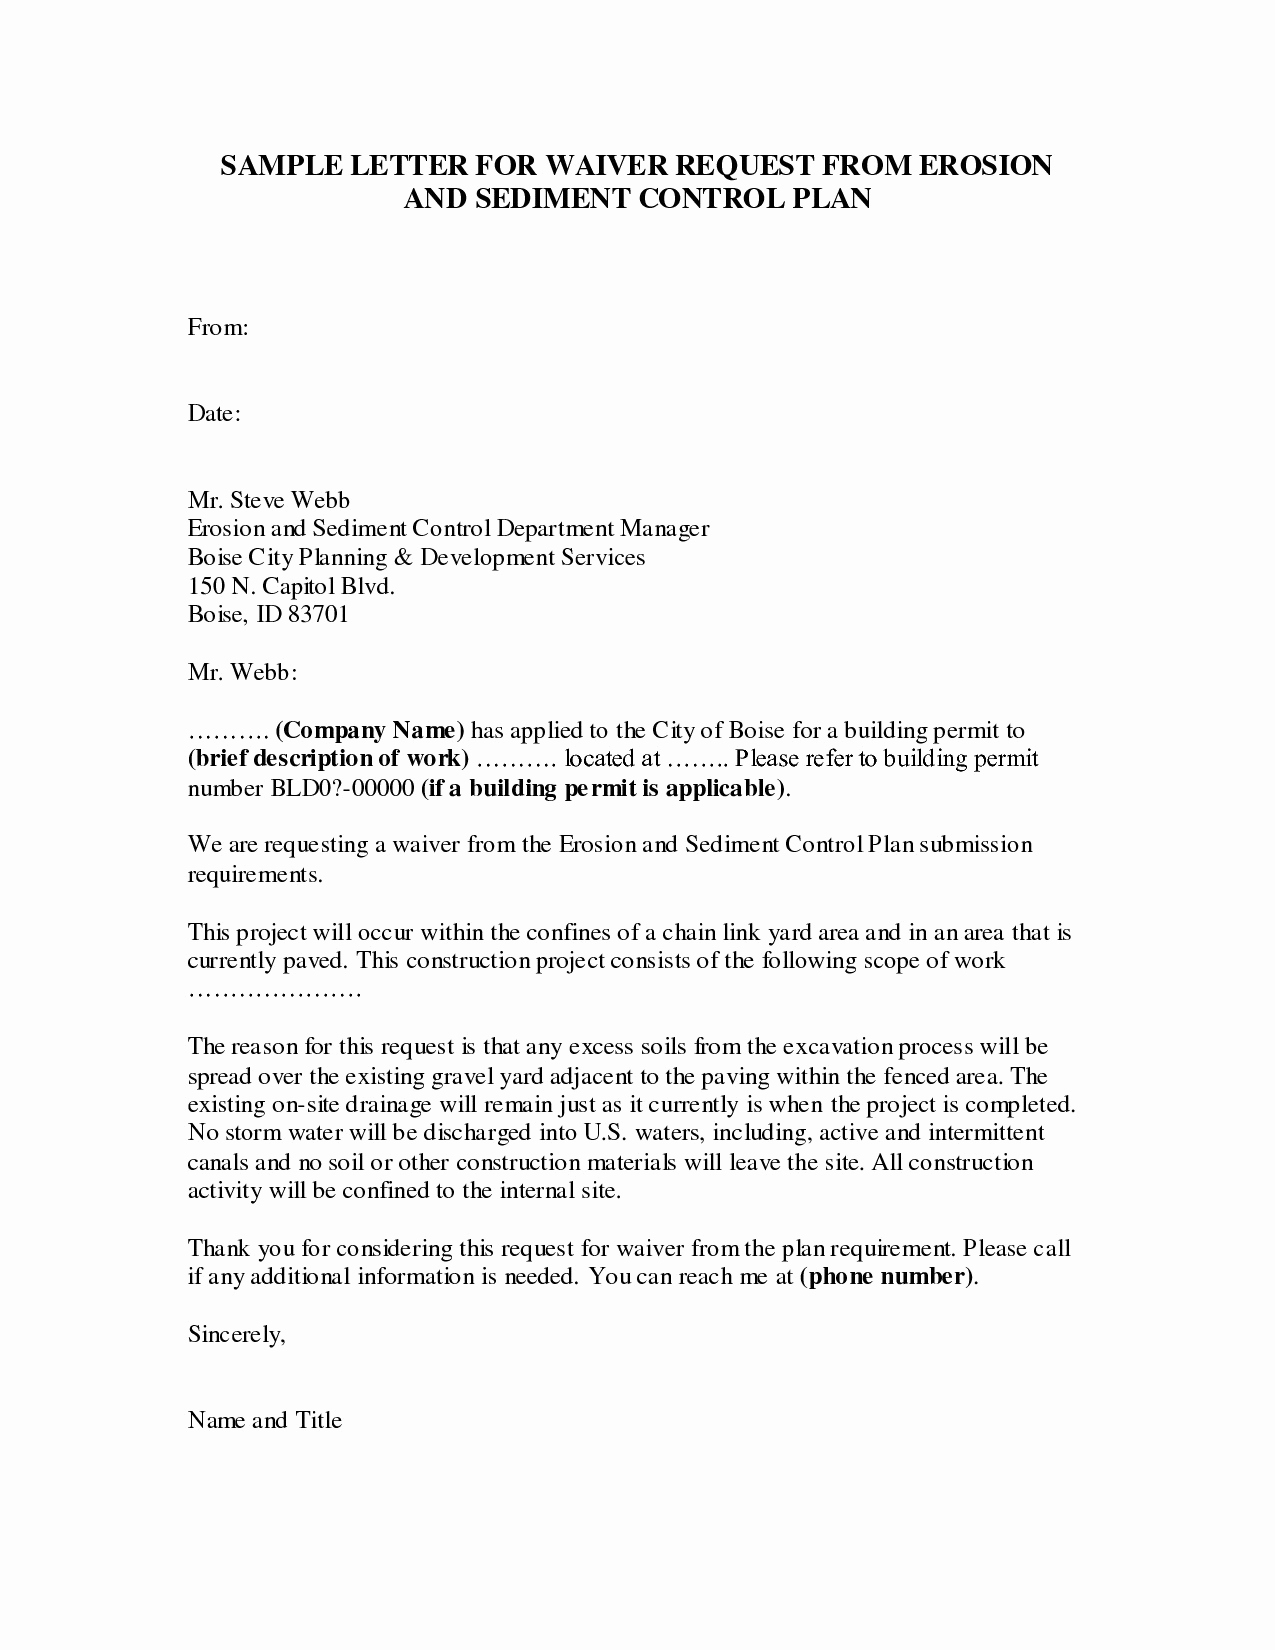 Cancel Service Contract Letter Template - Cancellation Lease Letter Awesome Rent to Own Business Contract